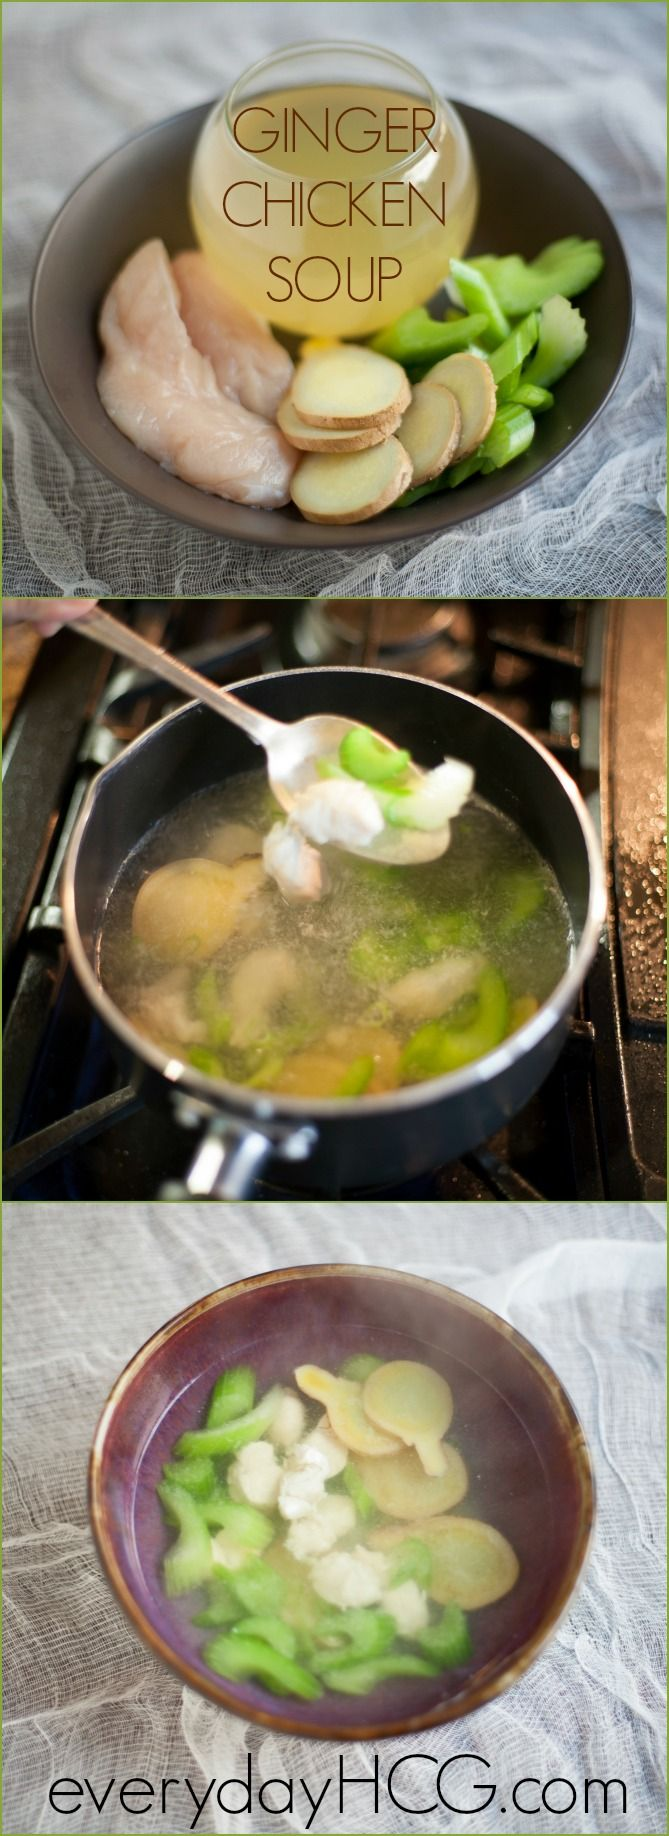 Find This Pin And More On Fast Metabolism Recipes For The Winter, Forting Ginger Chicken Soup